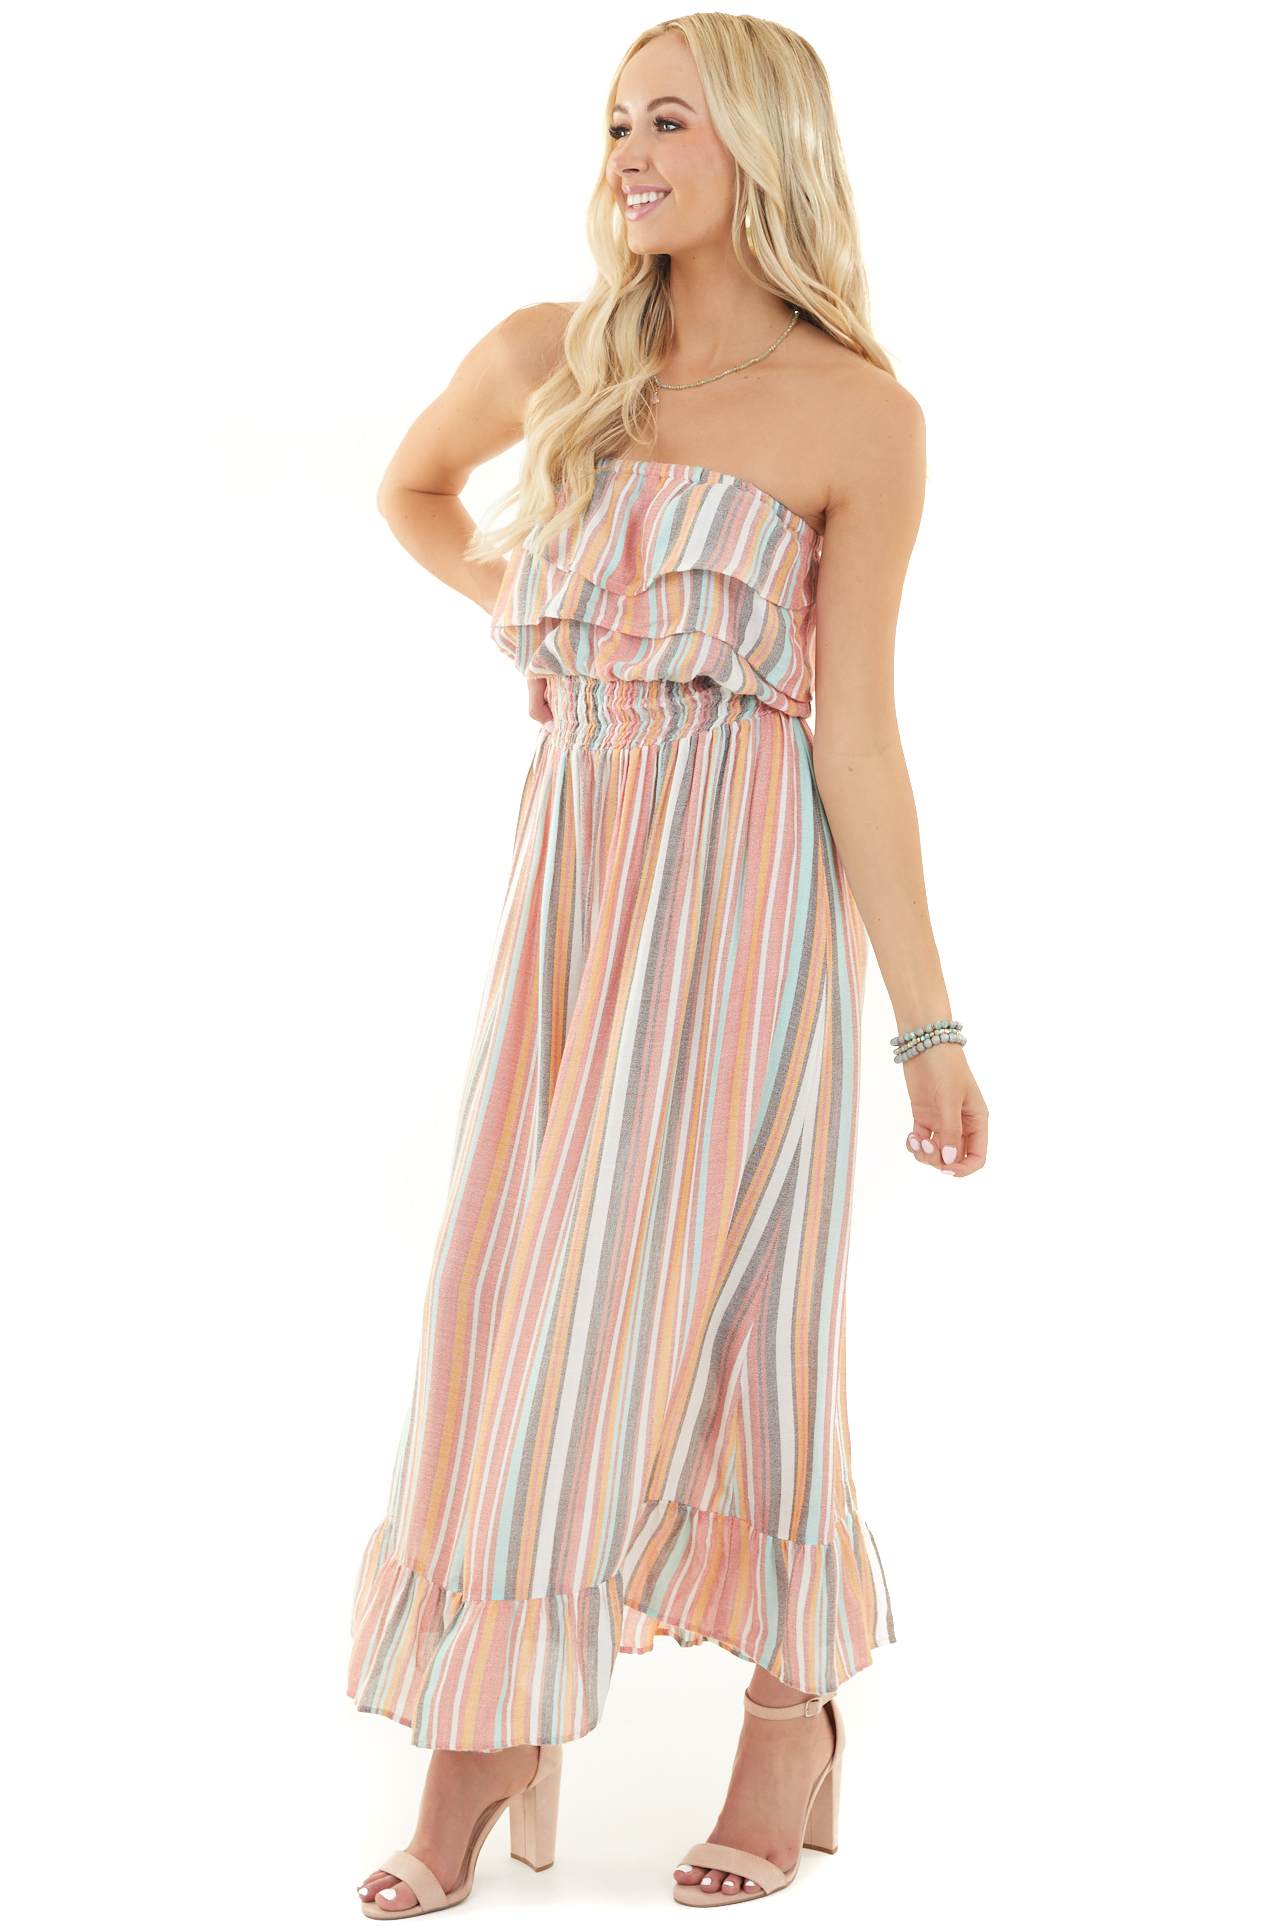 Multicolor Strapless Maxi Dress with Ruffled Hemline